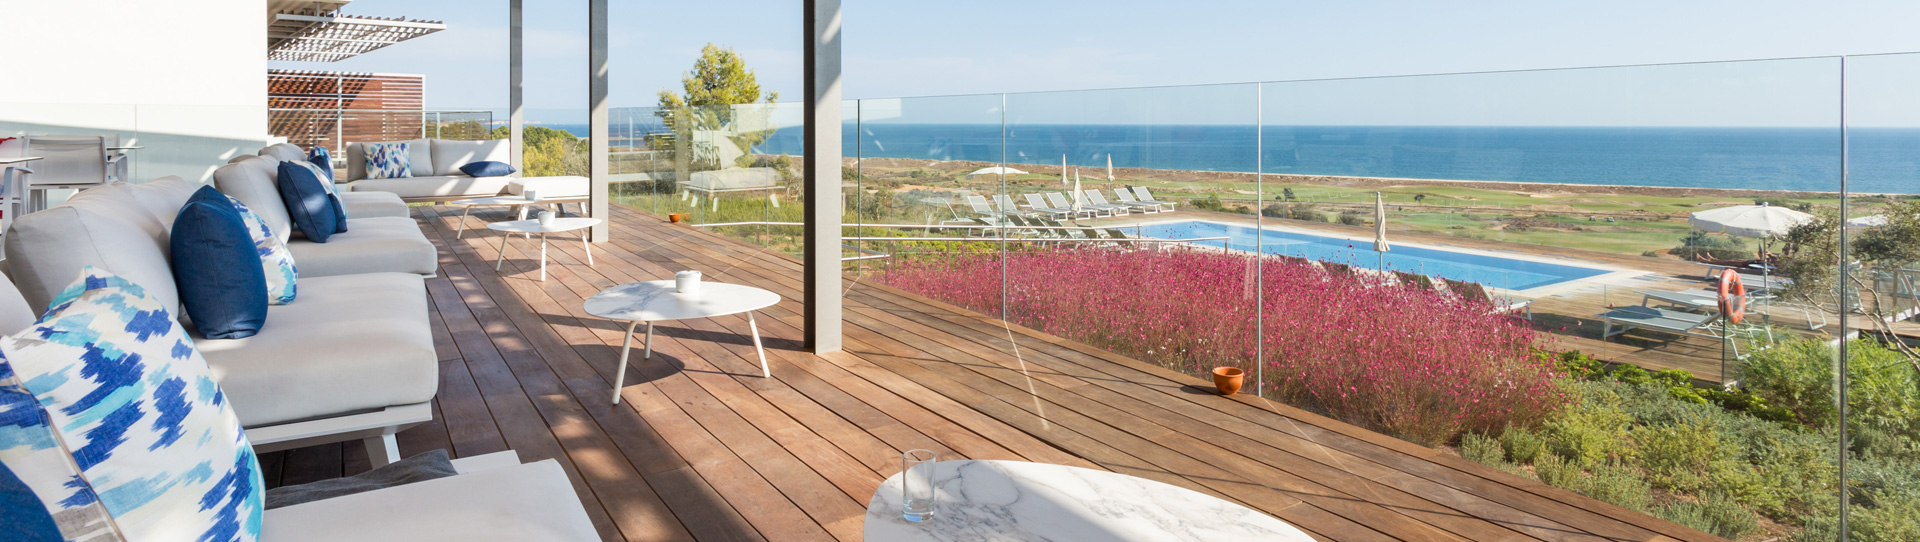 Onyria Palmares Beach House Hotel - Photo 3